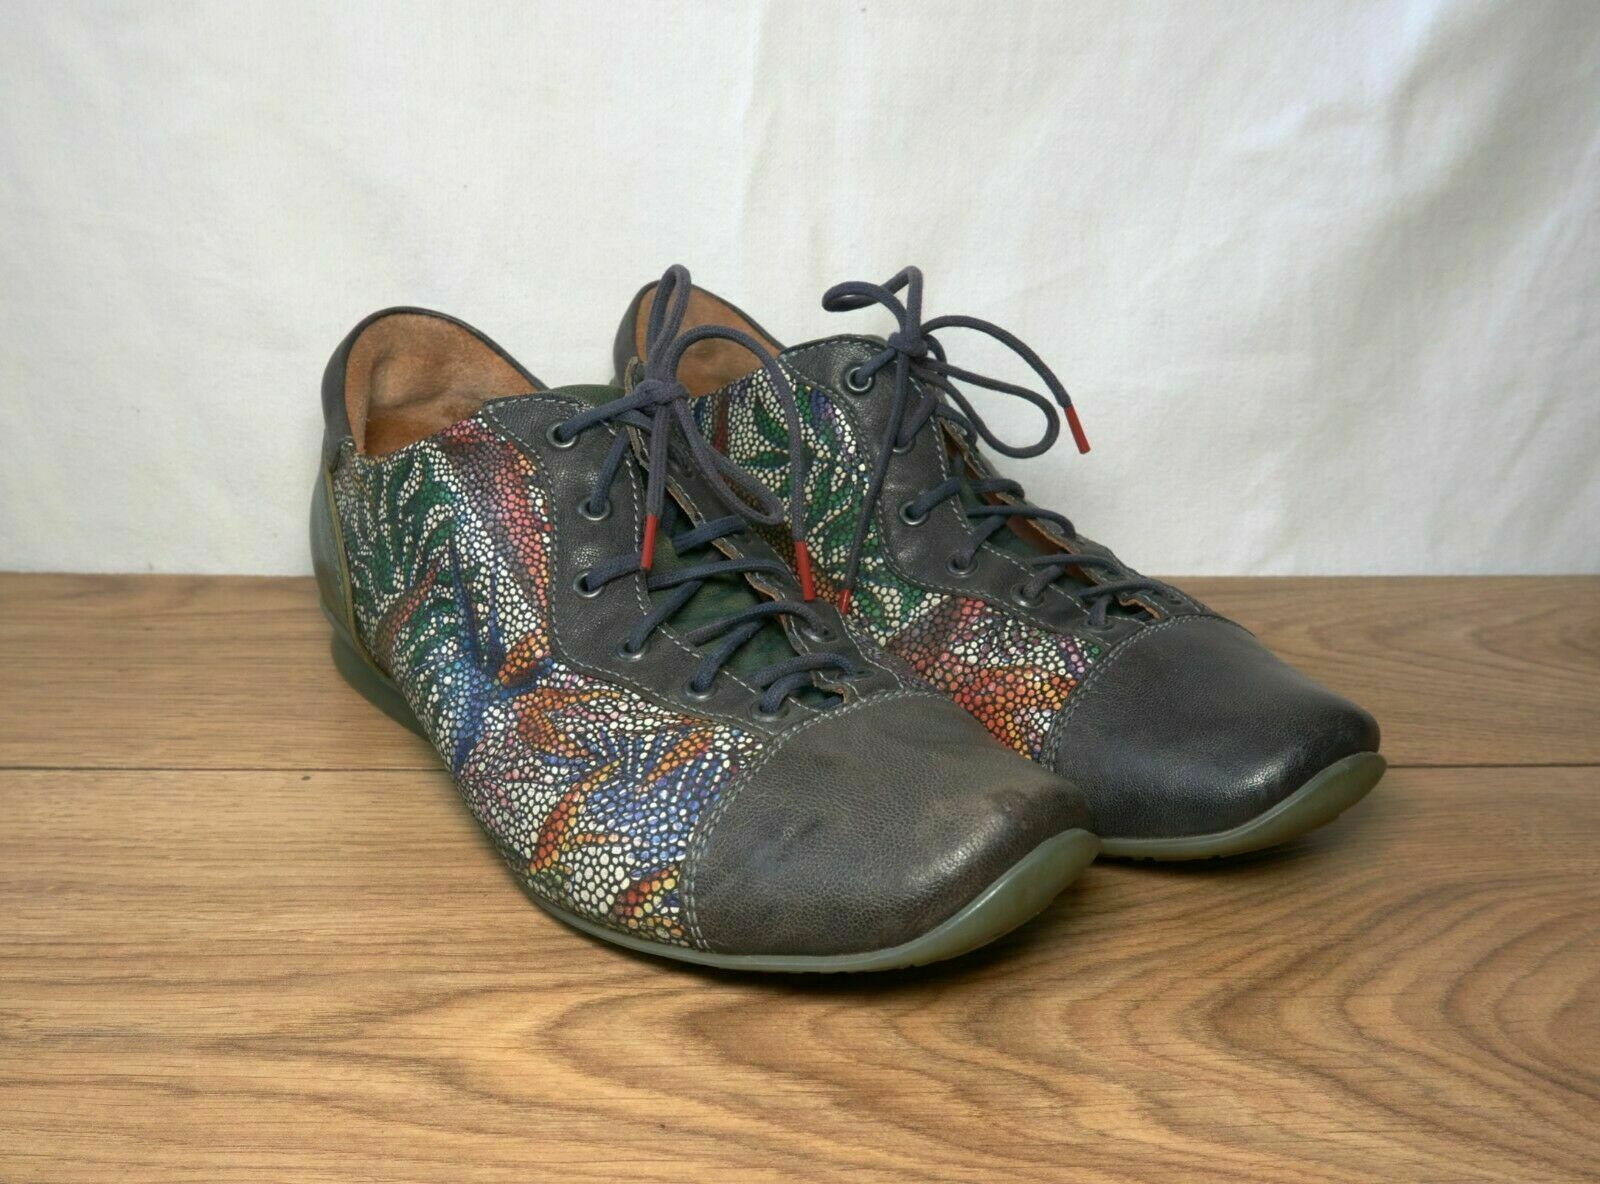 Think! Women's Leather Colorful Pattern Derby Lace Up Shoes, Size EUR 38 US 7